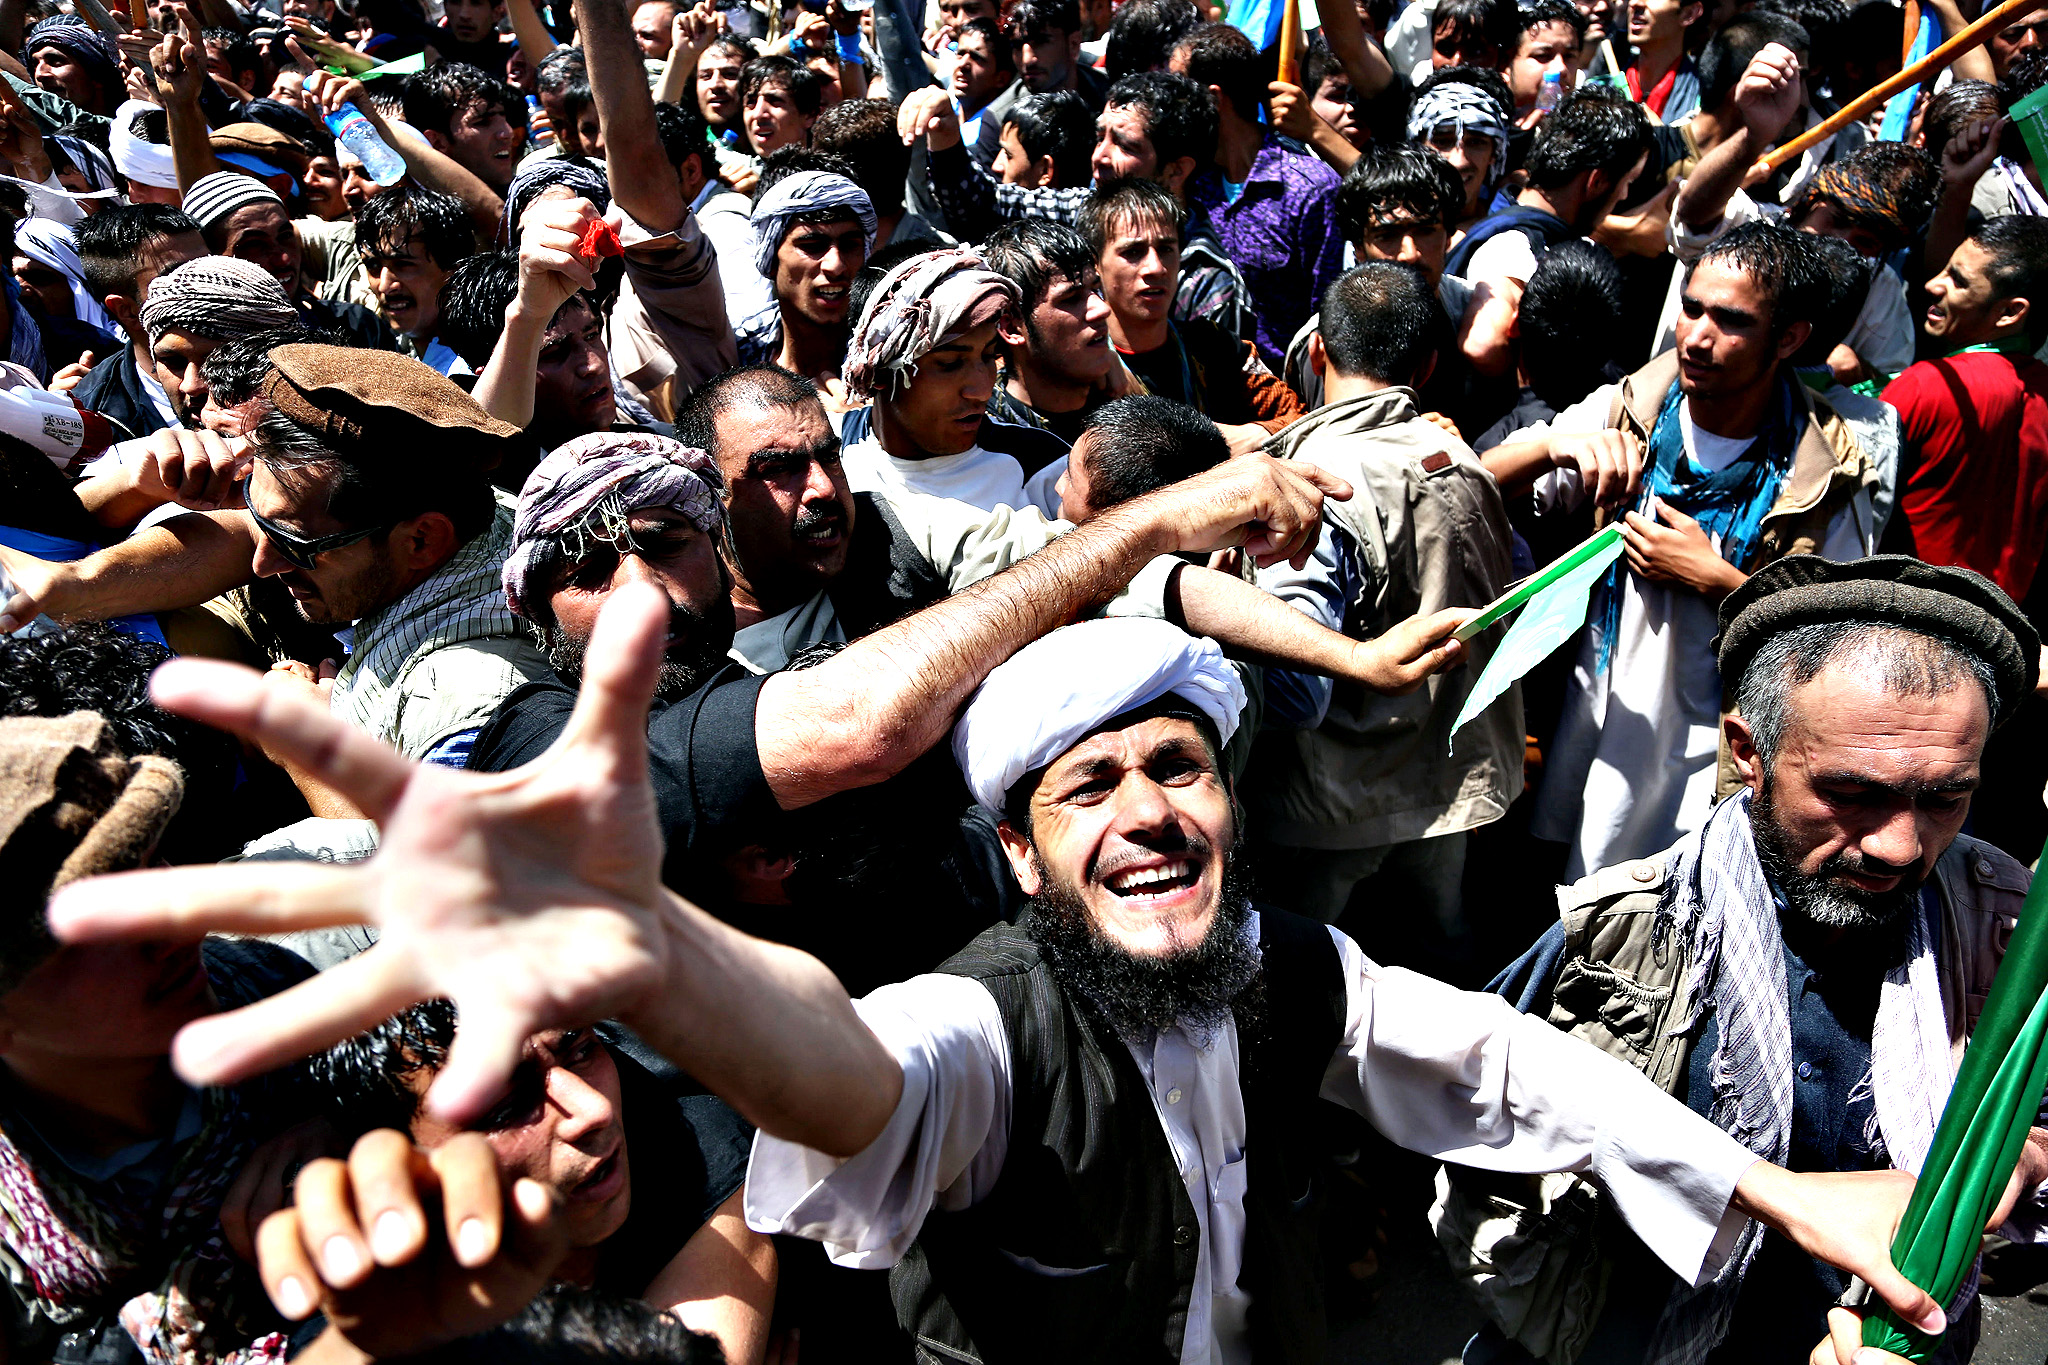 Supporters of Afghan presidential candidate Abdullah Abdullah chant slogans during a protest in Kabul, Afghanistan, Friday, June 27, 2014. Afghanistan's security situation has been complicated by a political crisis stemming from allegations of massive fraud in the recent election to replace President Hamid Karzai, the only leader the country has known since the Taliban regime was ousted nearly 13 years ago. Abdullah Abdullah, one of two candidates who competed a runoff vote on June 14 suspended his relations with the Independent Election Commission after he accused electoral officials of engineering extensive vote rigging, allegations they have denied